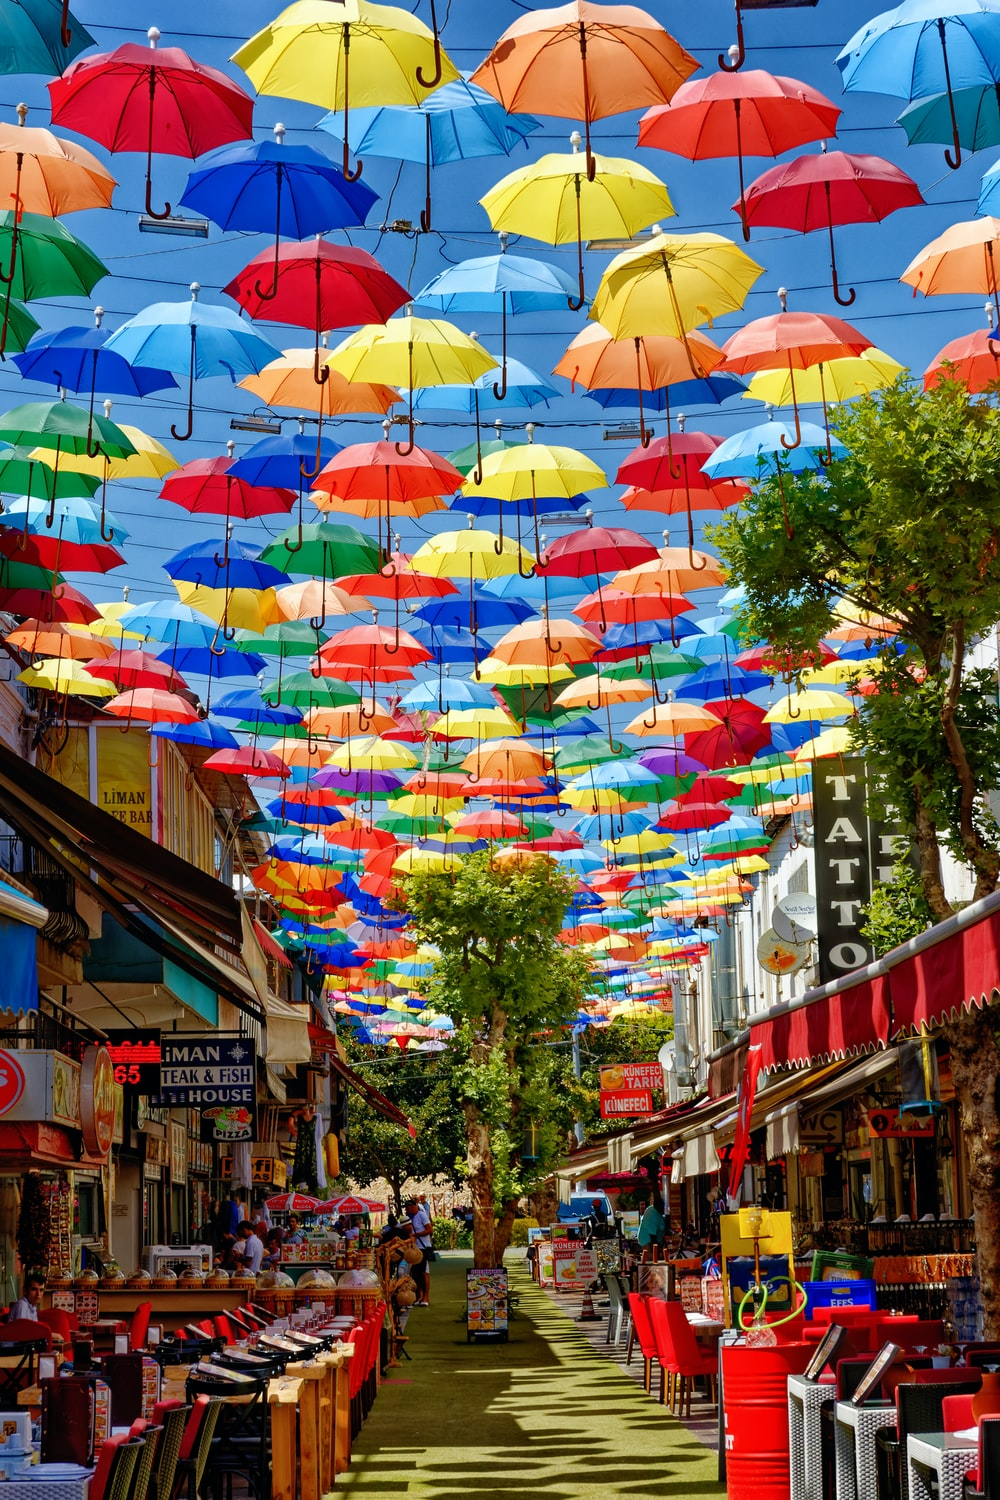 assorted umbrellas on the street during daytime